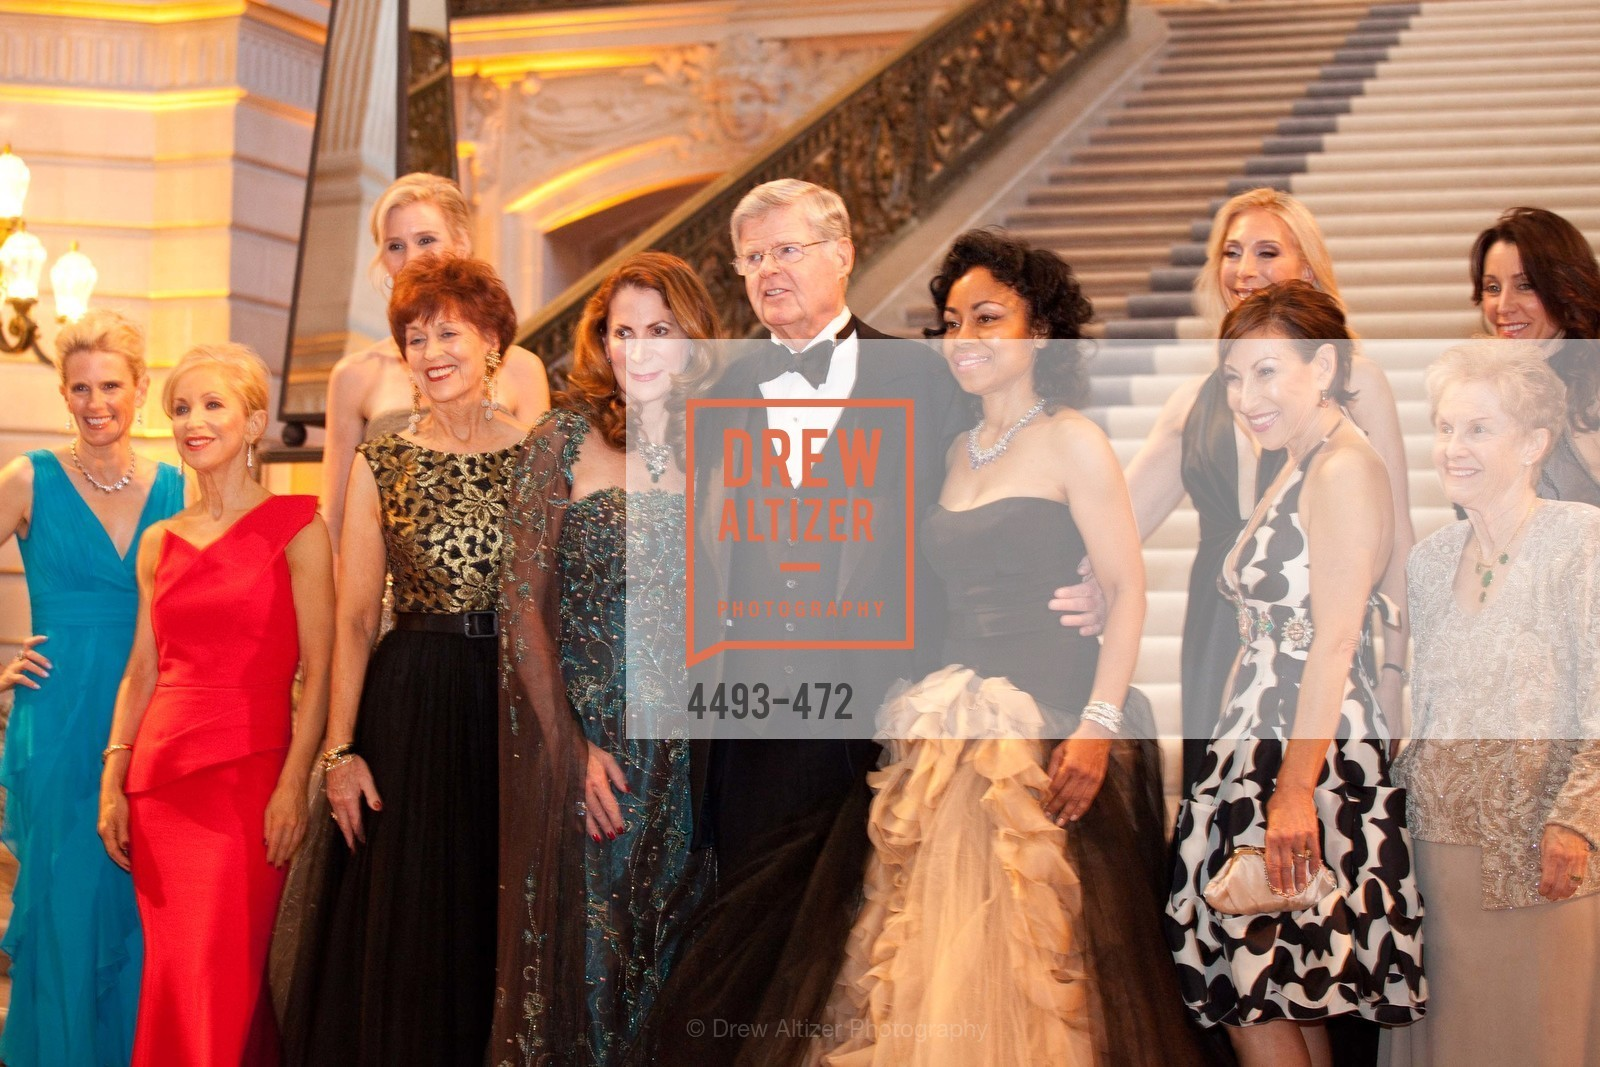 Marie Hurabiell, Shelley Gordon, Alison Mauze, Suzanne Thornton, Patricia Ferrin Loucks, Richard Barker, Tanya Powell, Betsy Linder, Cathy Goodman, Debra Taylor, SAN FRANCISCO BALLET Opening Night Gala: PHENOMENAL - Intermission & Dinner, US. SF City Hall, January 22nd, 2014,Drew Altizer, Drew Altizer Photography, full-service agency, private events, San Francisco photographer, photographer california